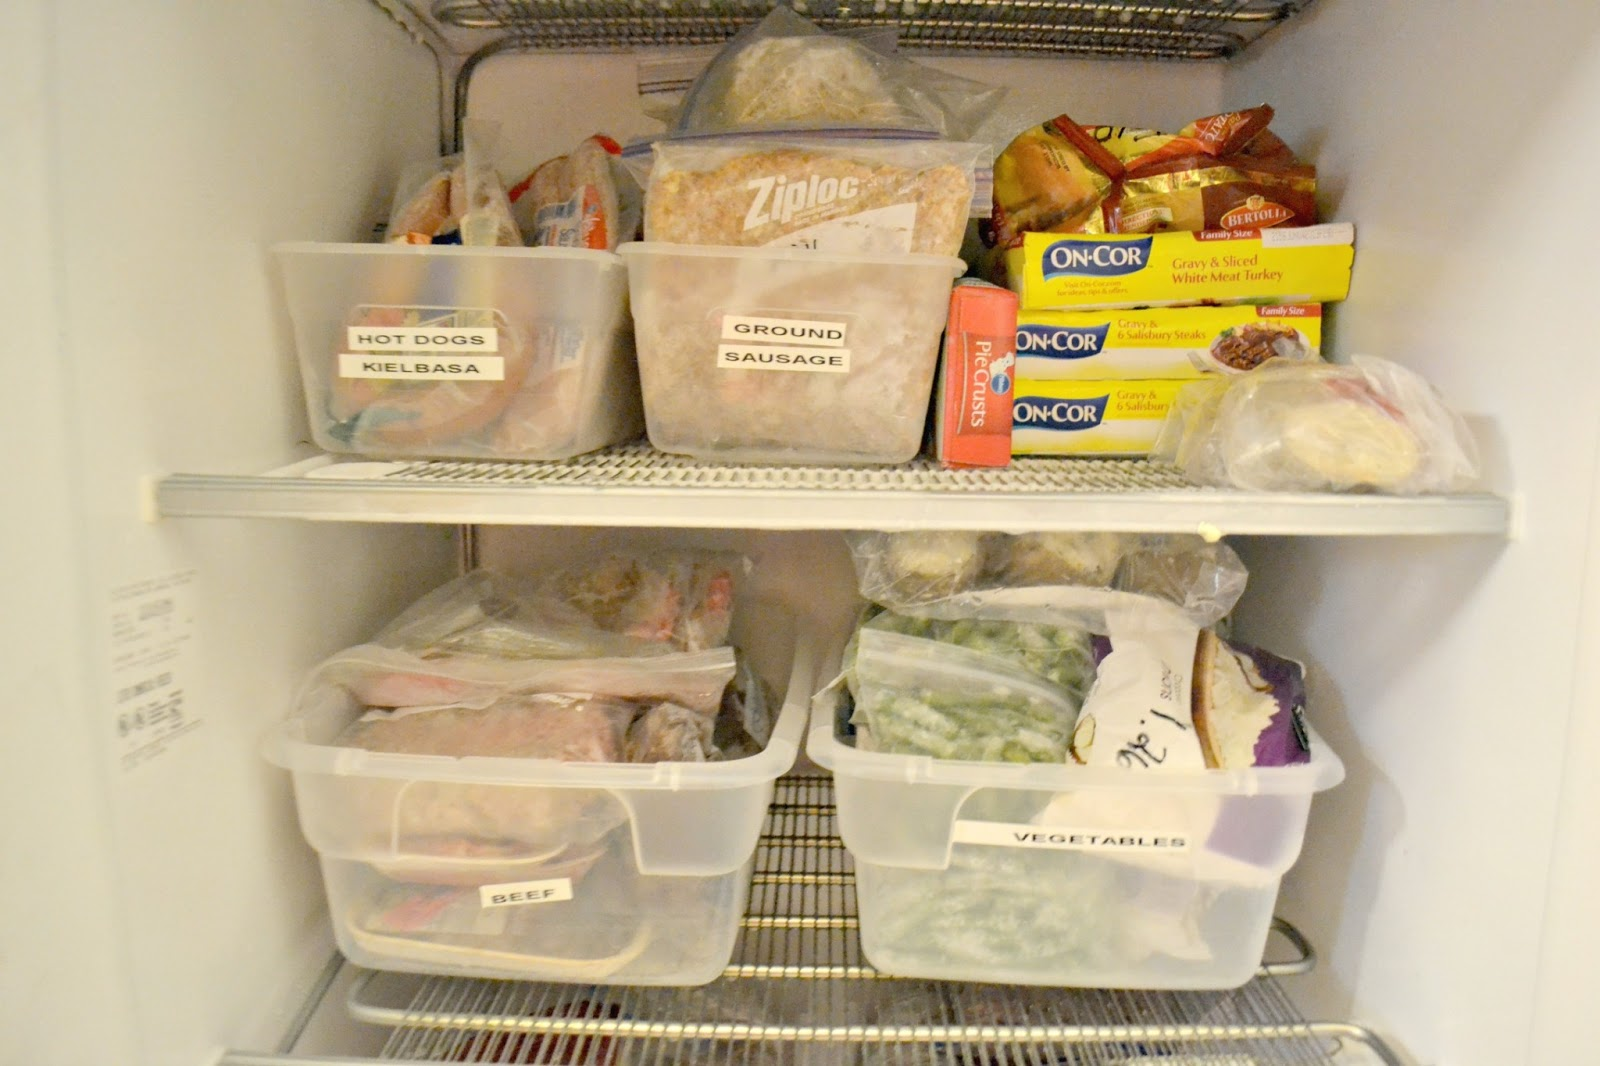 8 Tips to Organizing Your Freezer2